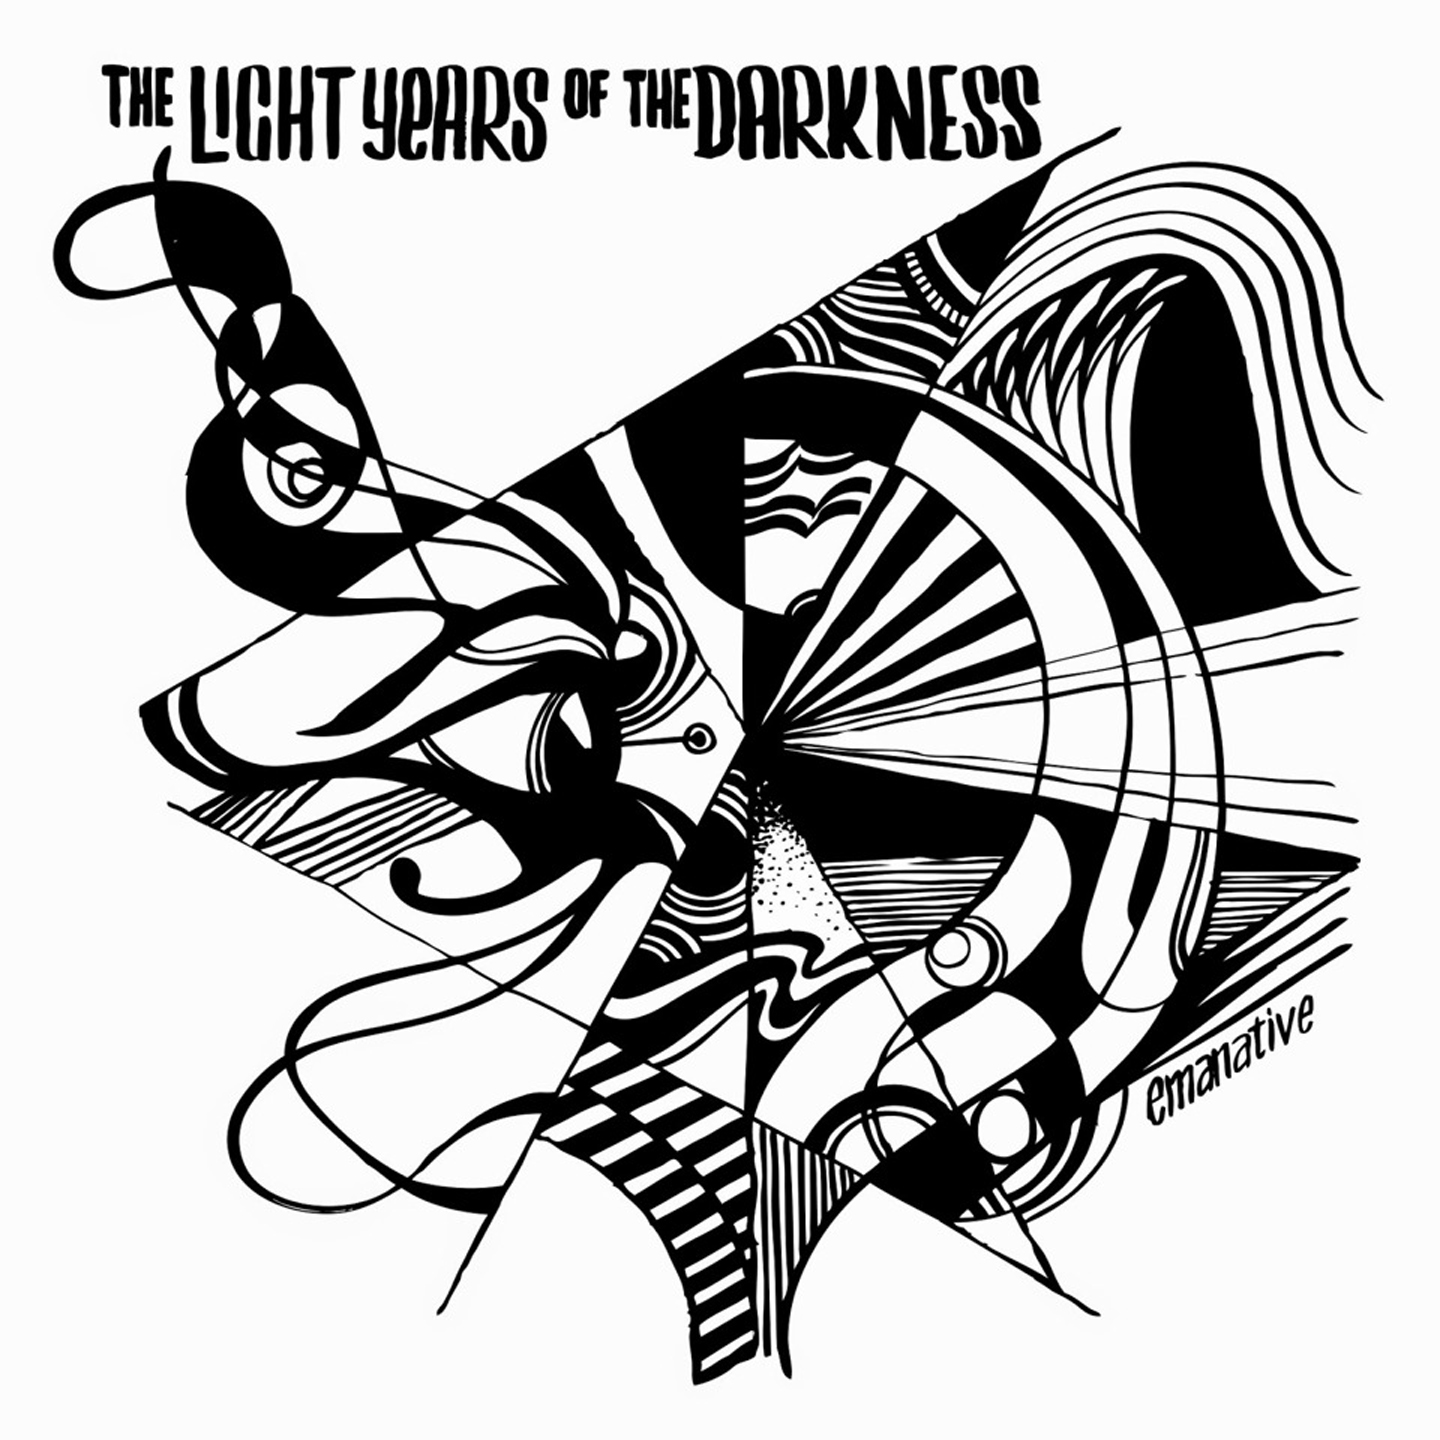 EMANATIVE - THE LIGHT YEARS OF THE DARKNESS (BROWNSWOOD, 2015)